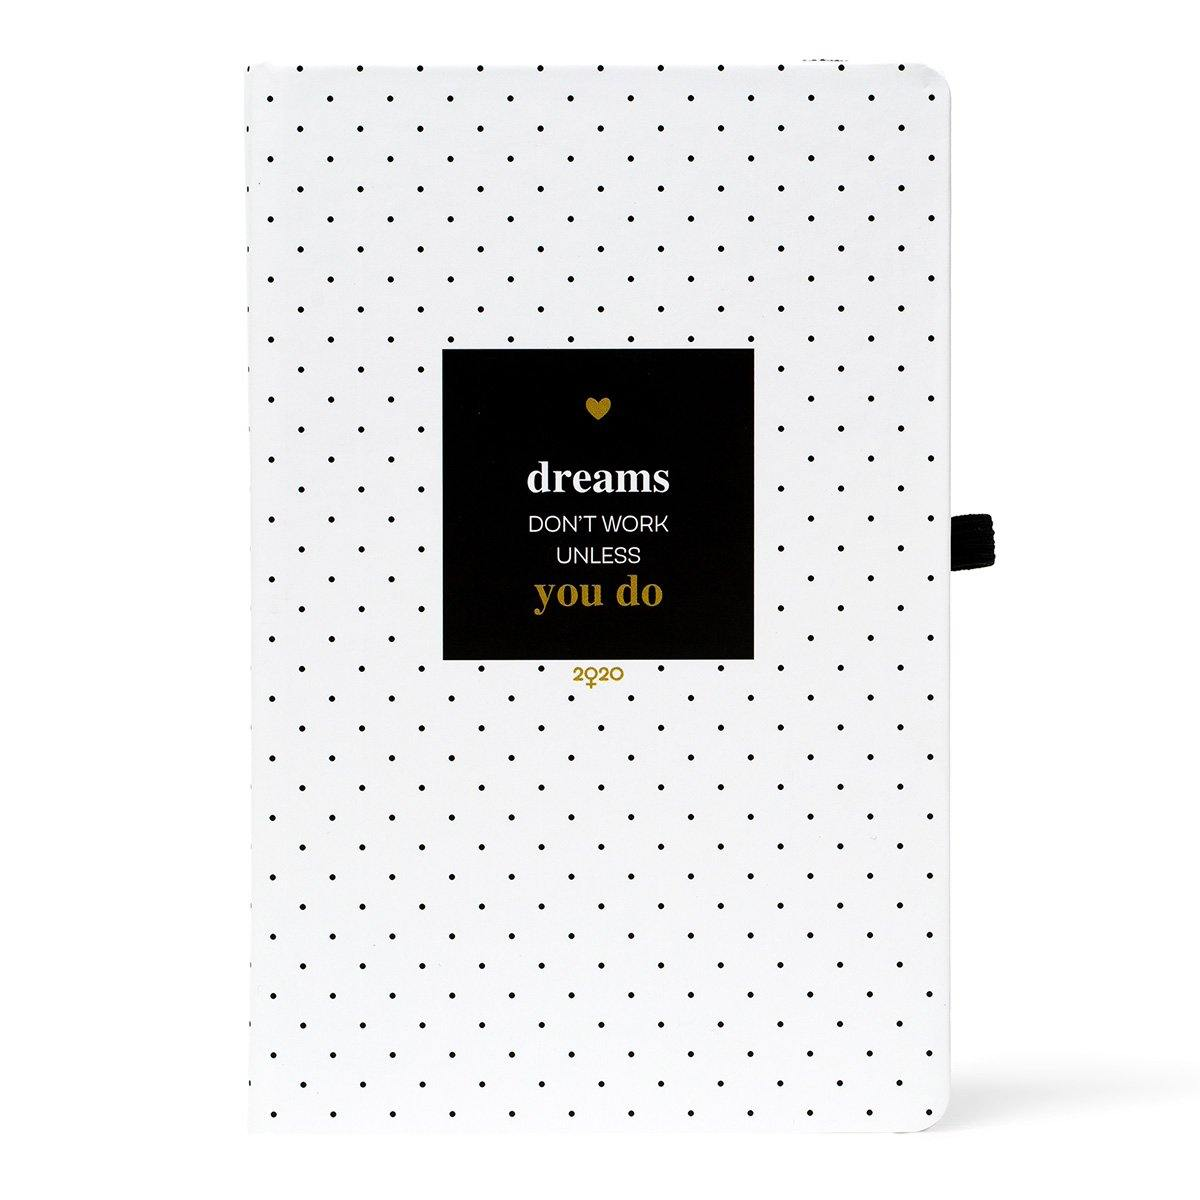 DREAMS DOTS